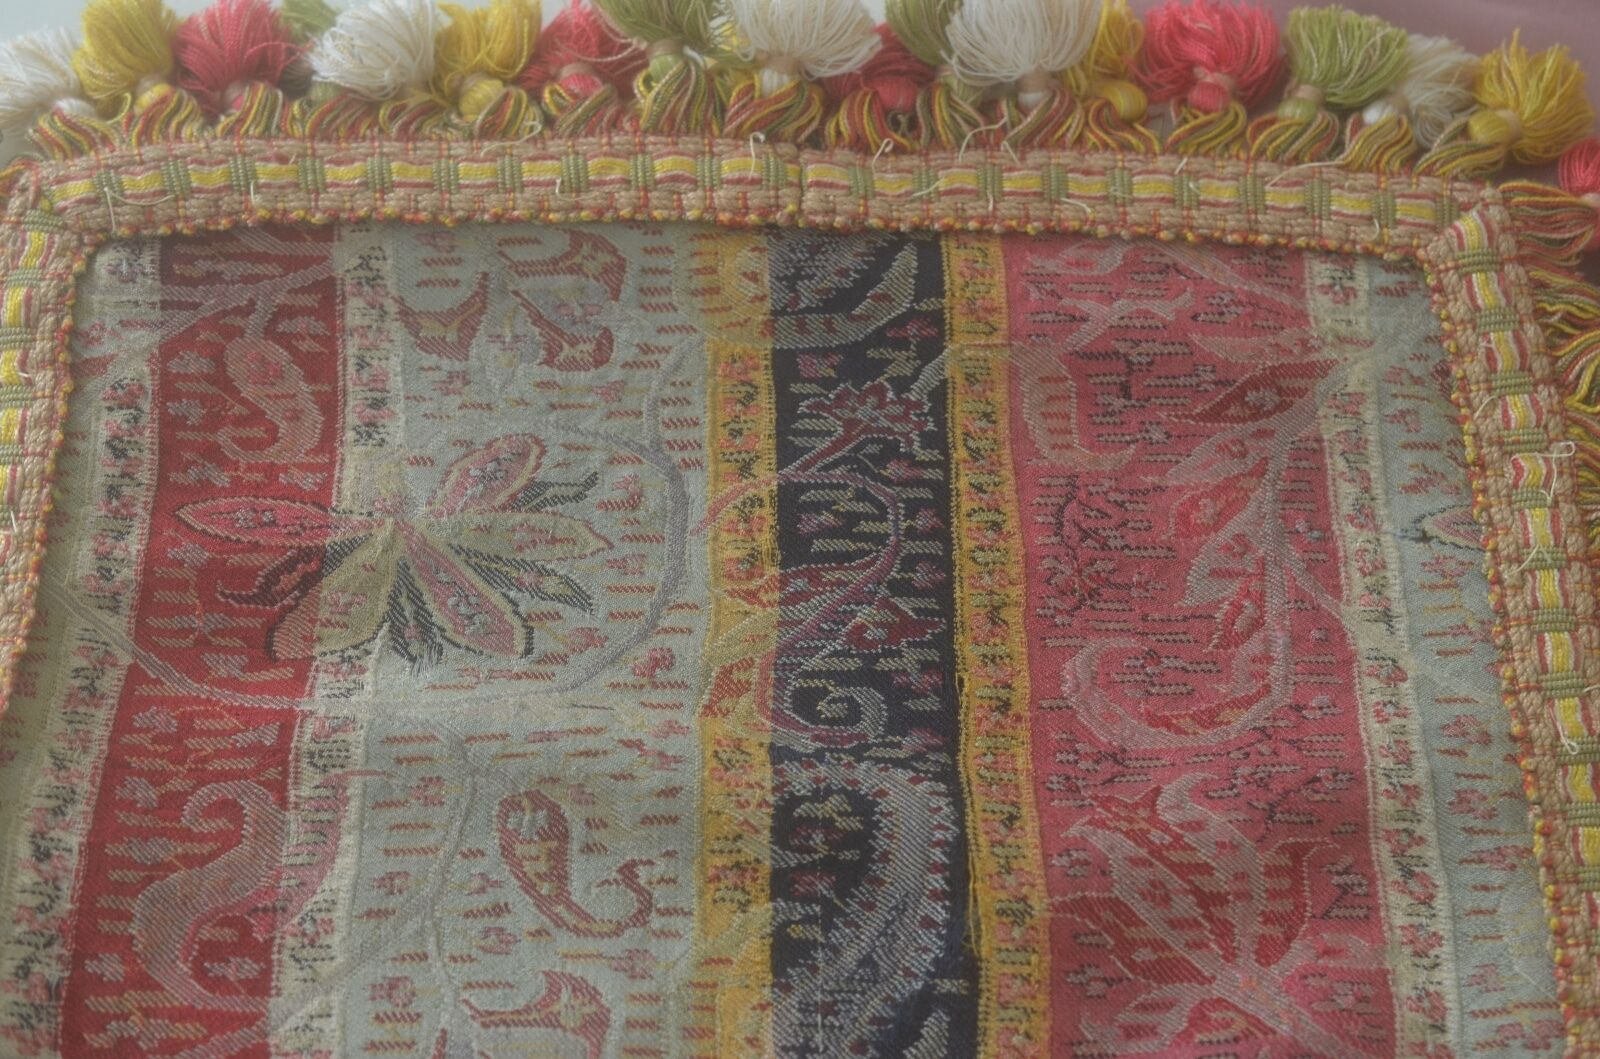 history of kashmiri embroidery Origin and history the land of kashmir etched its beautiful essence in the form of kashida embroidery into the fashion world way back in the mughal period which was patronized by the emperors and the royals of that era.